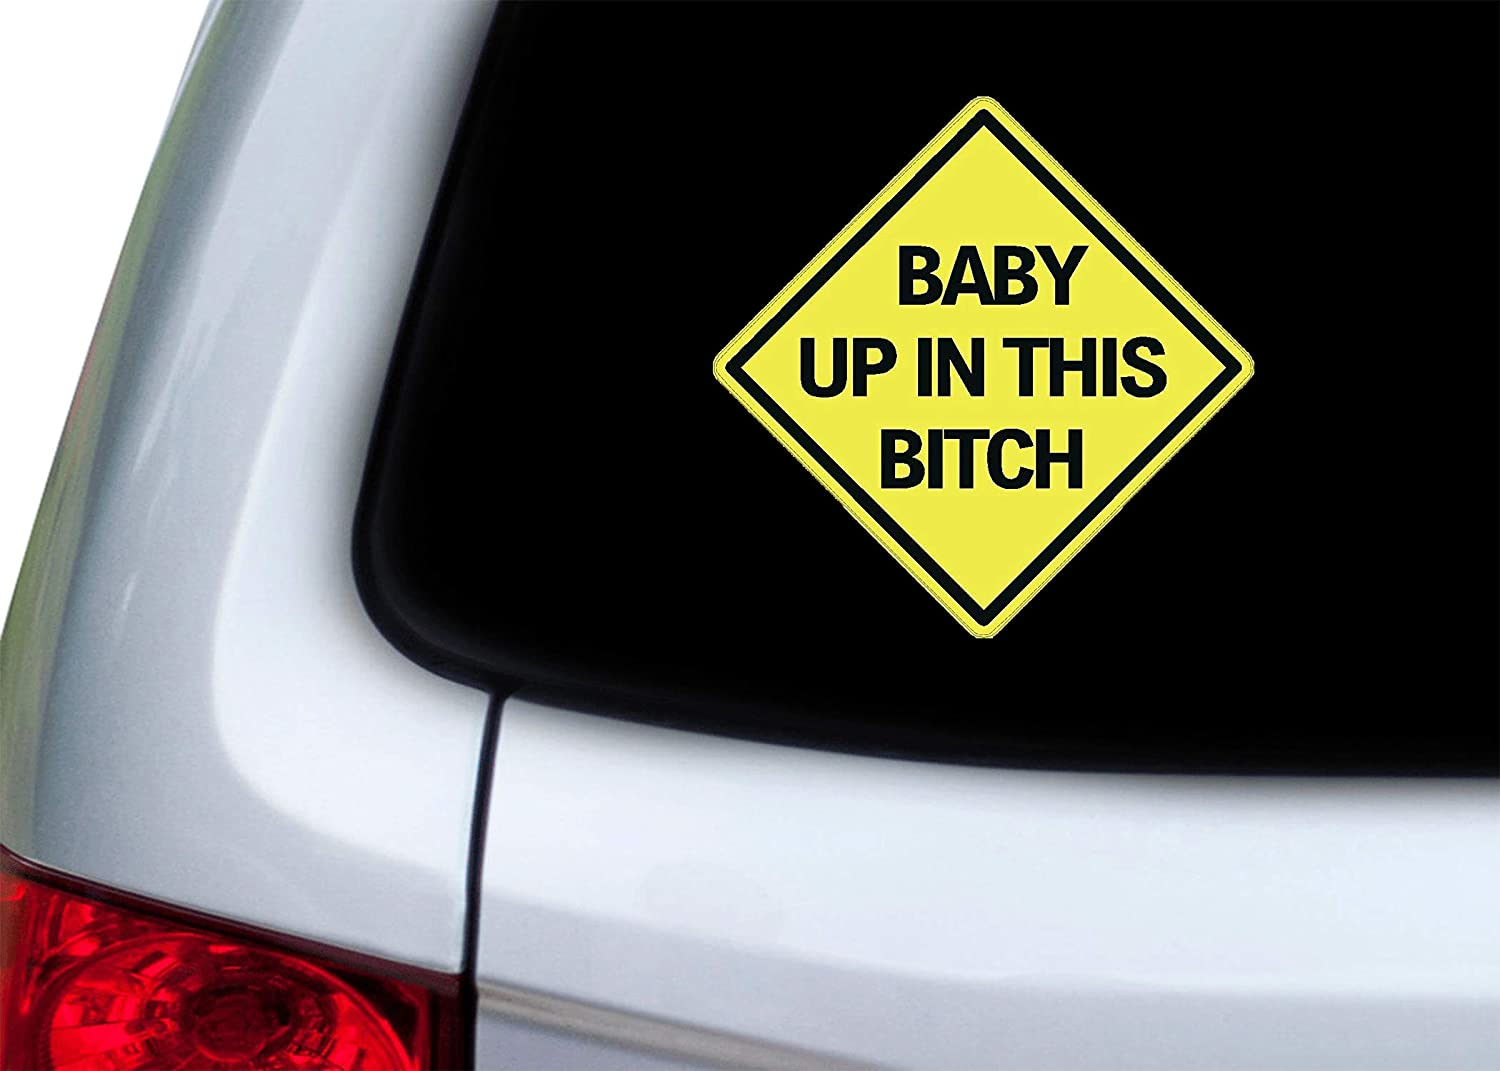 Rogue River Tactical Baby Up in This Bitch Sticker Funny Auto Decal Bumper Vehicle Safety Sticker Sign for Car Truck SUV